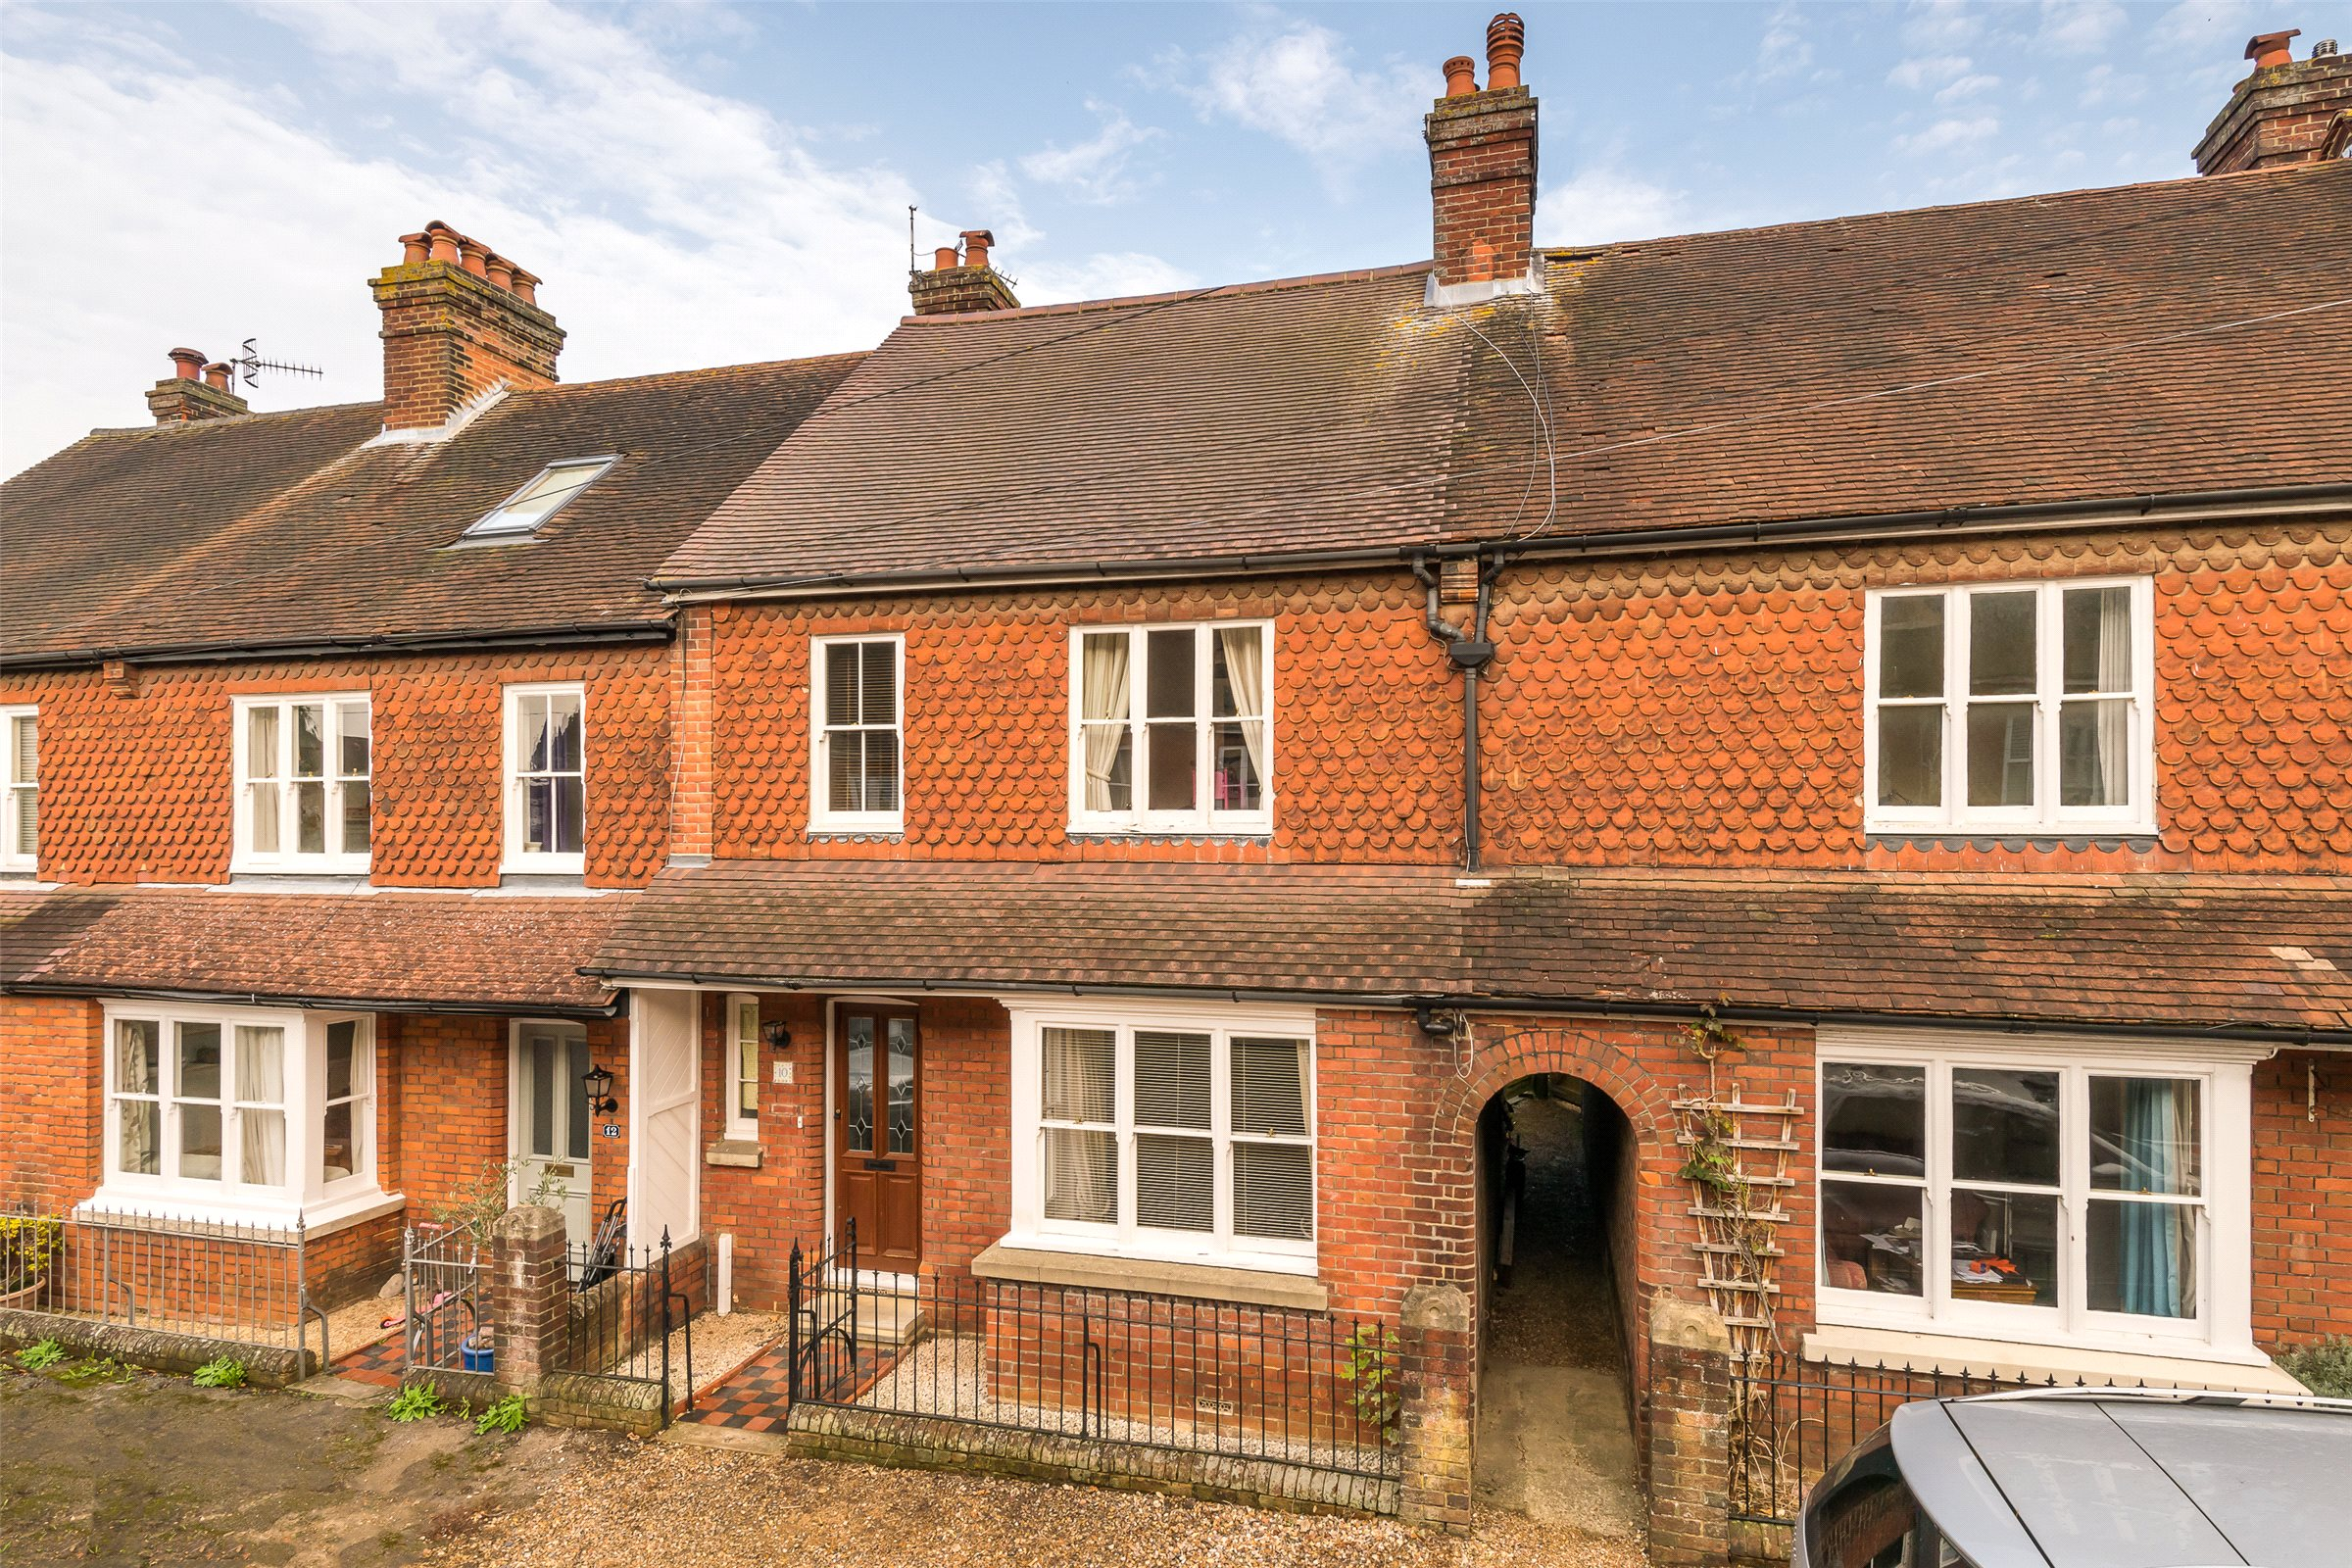 3 Bedrooms Terraced House for sale in Ledbury Road, Reigate, Surrey, RH2